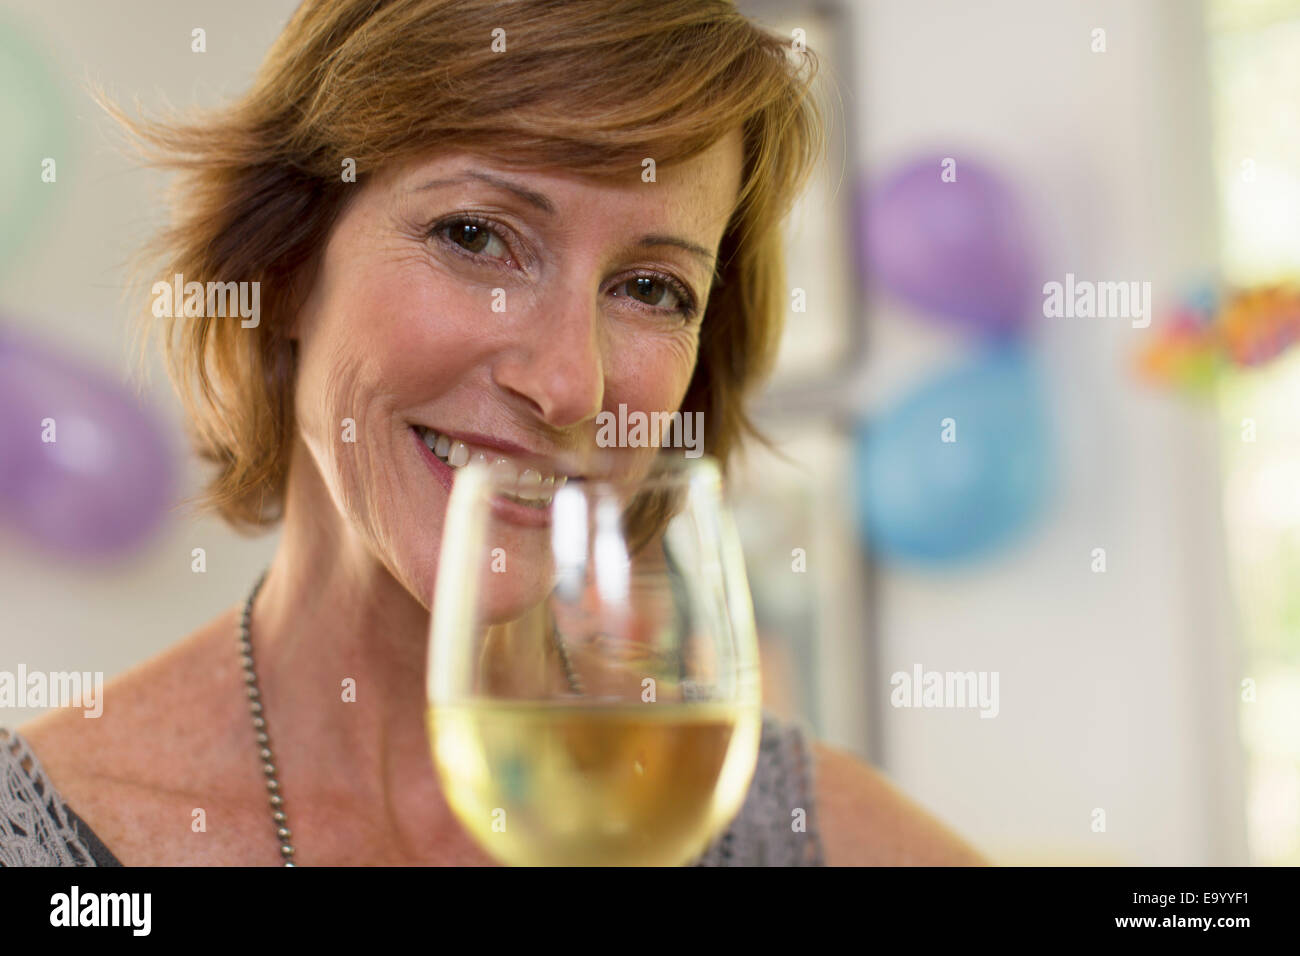 Portrait of mature woman holding glass of wine - Stock Image